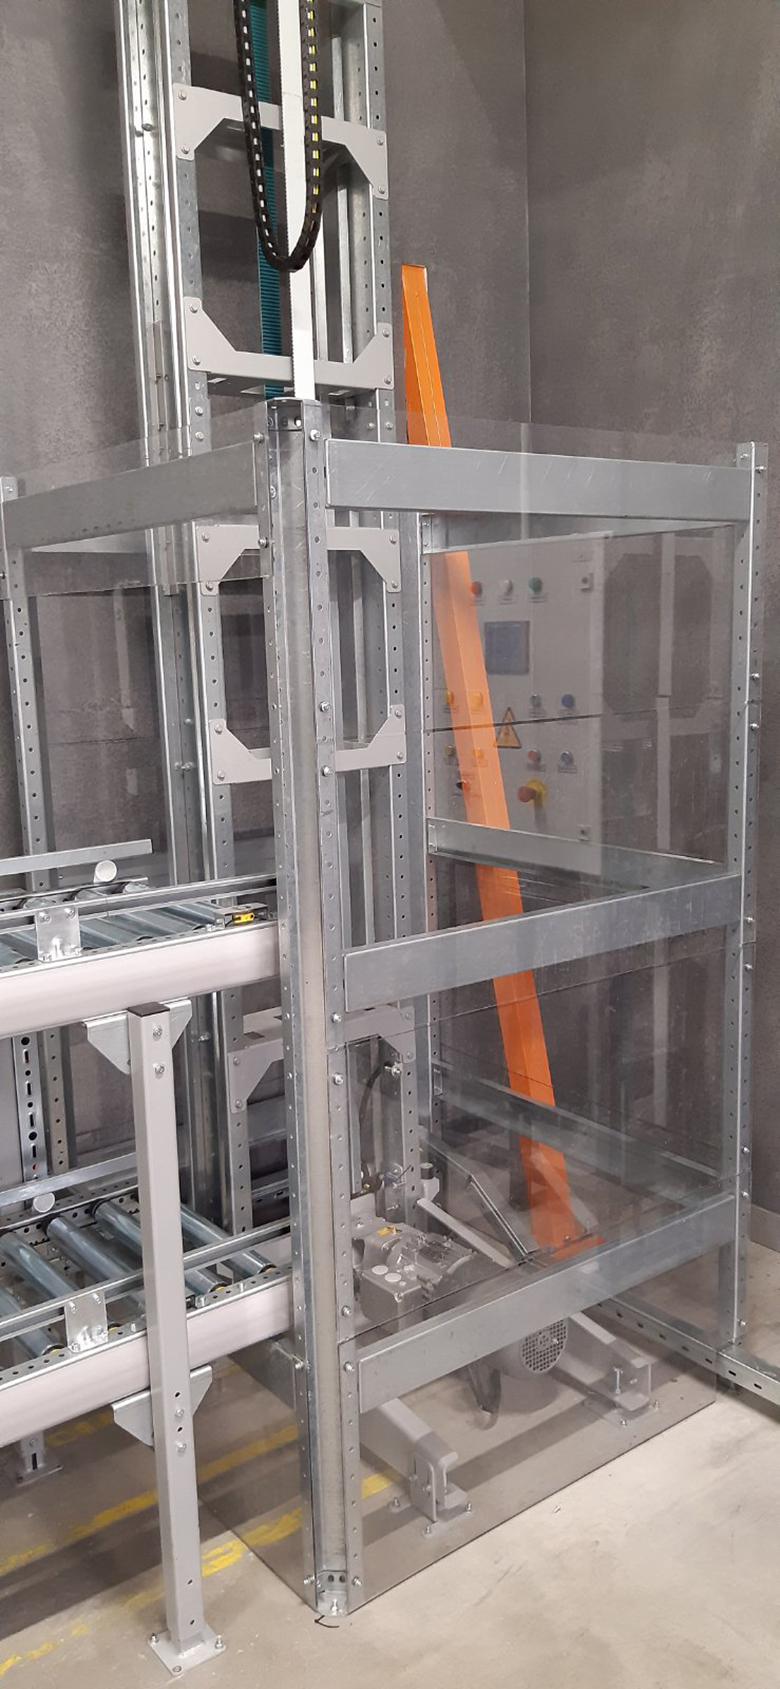 Vertical conveyor for boxes - 13 - kapelou.com